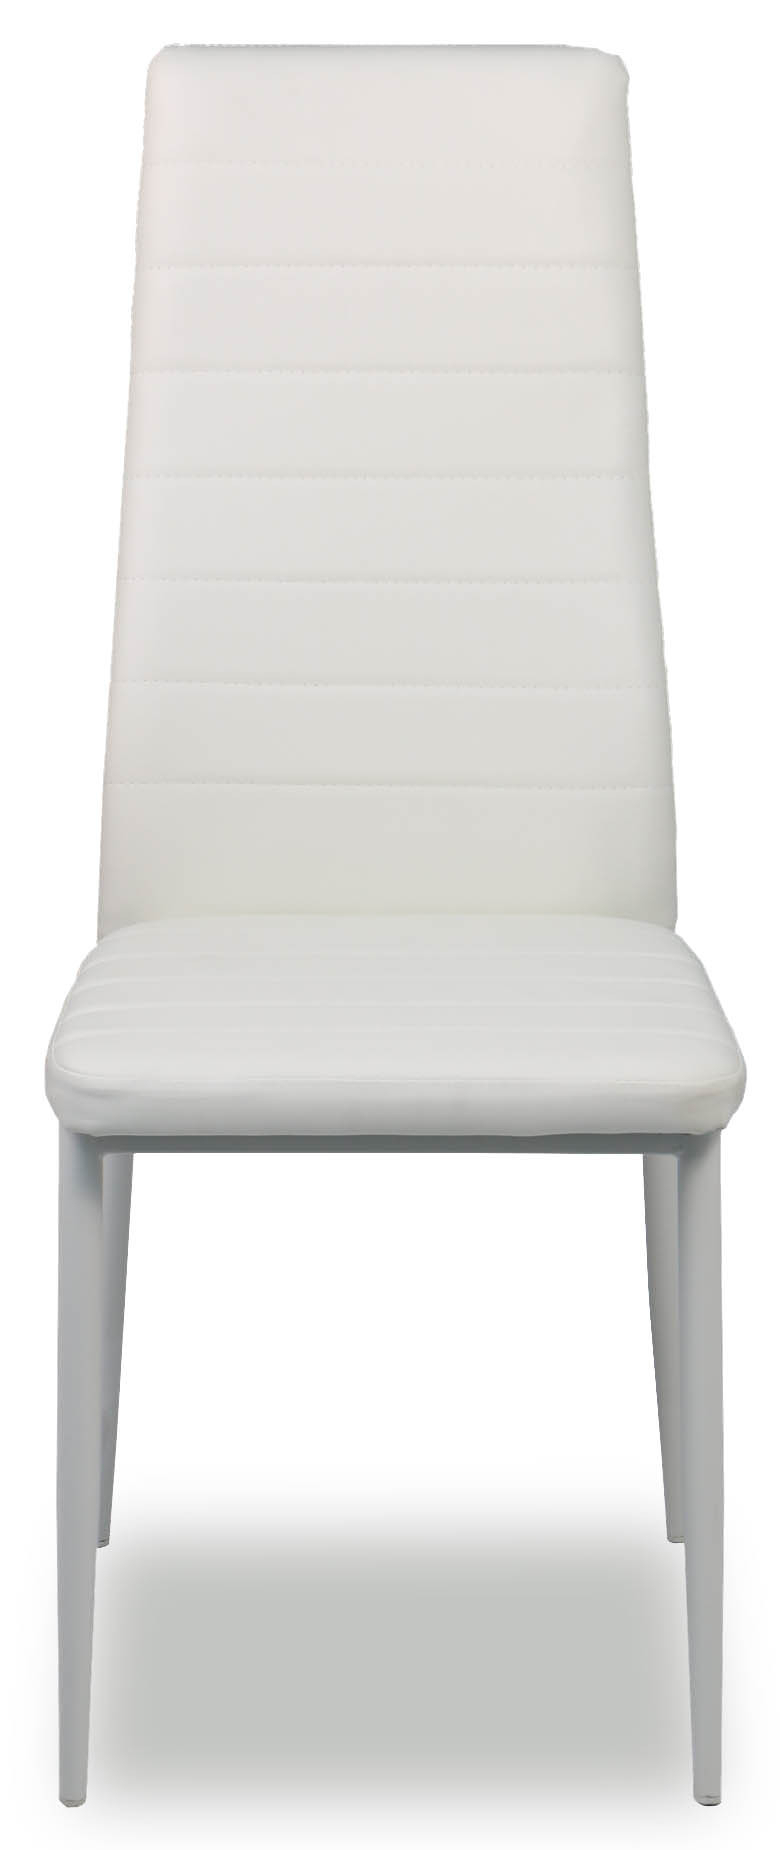 Quinn Dining Chair White | Furniture & Home Décor | Fortytwo regarding Quinn Teak Sofa Chairs